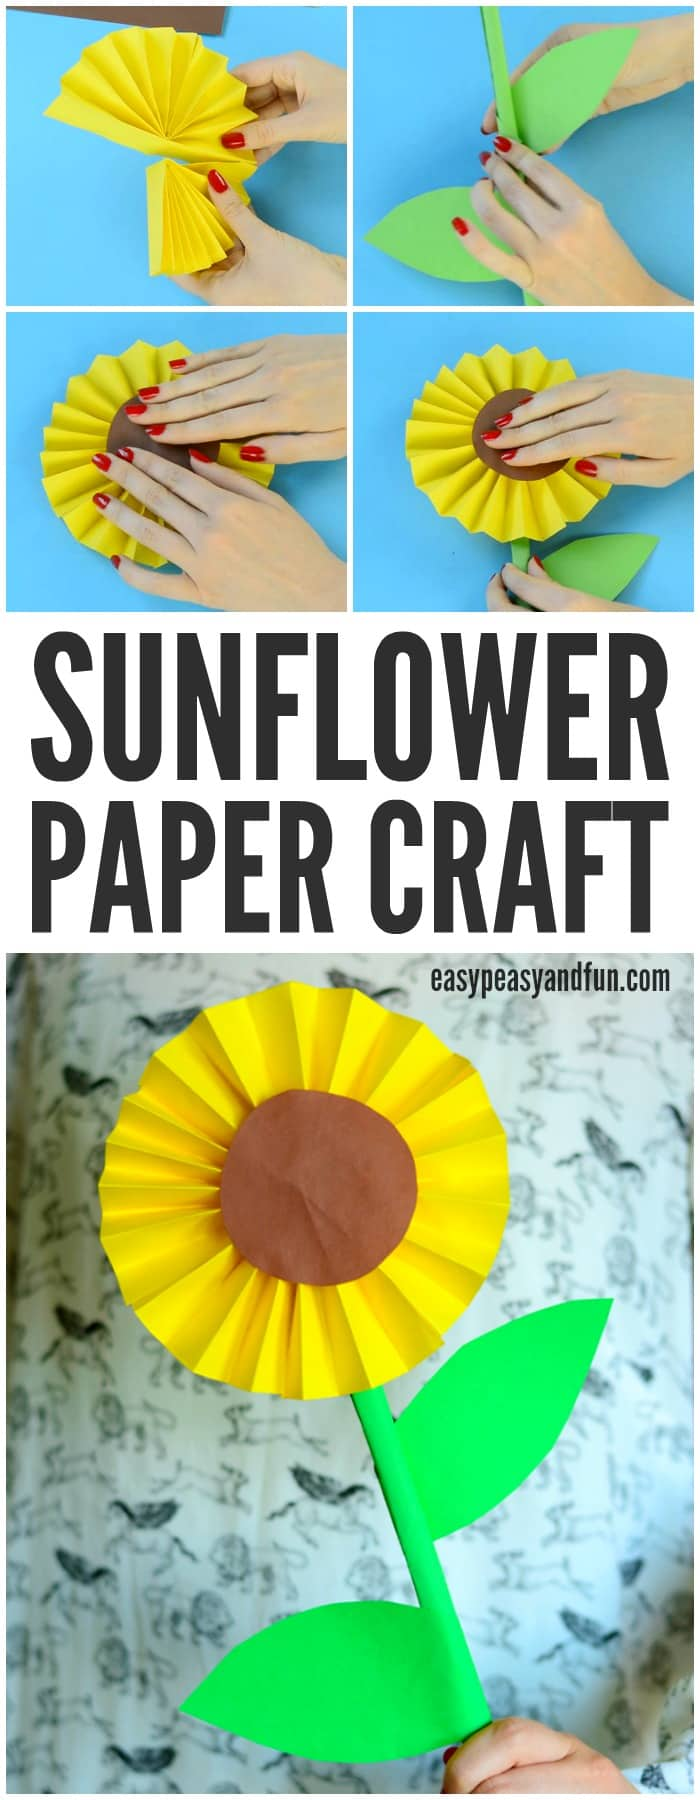 Fun Sunflower Paper Craft Idea for Kids to Make